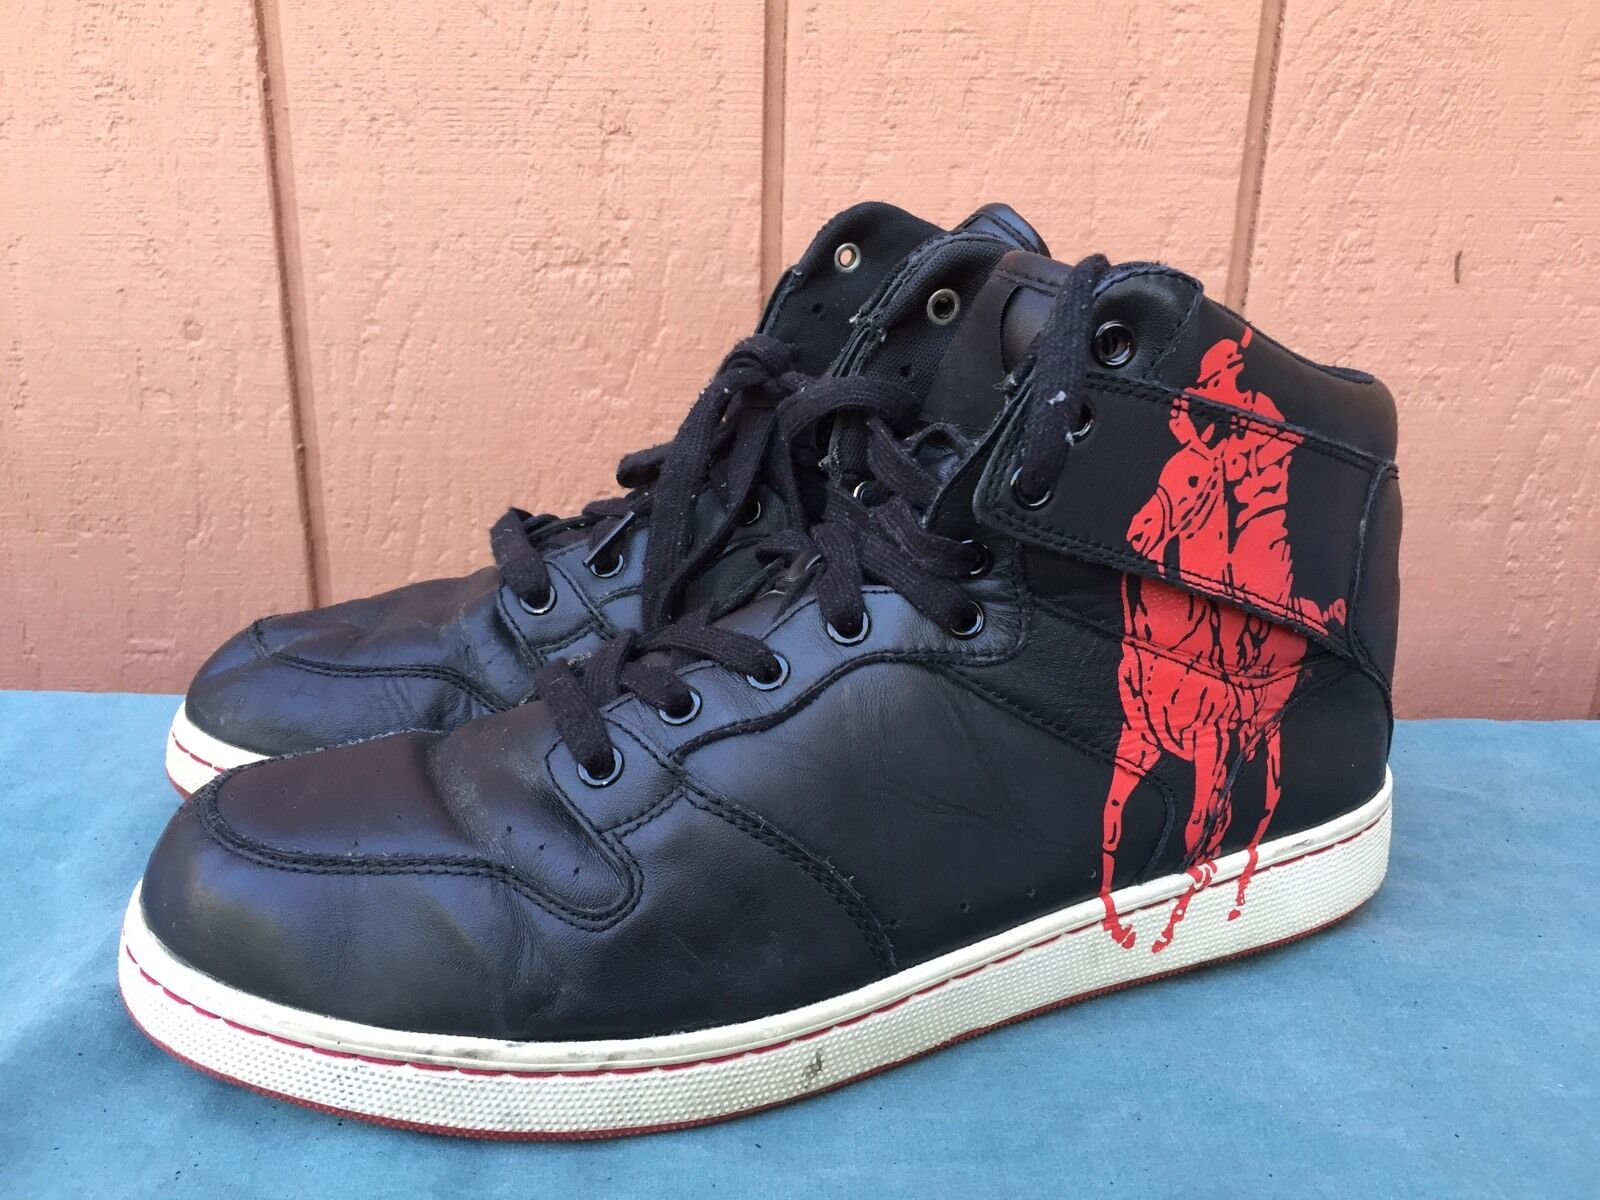 POLO RL Men's VANCE Soft Black Leather High Top Sneakers US Sz 13 D